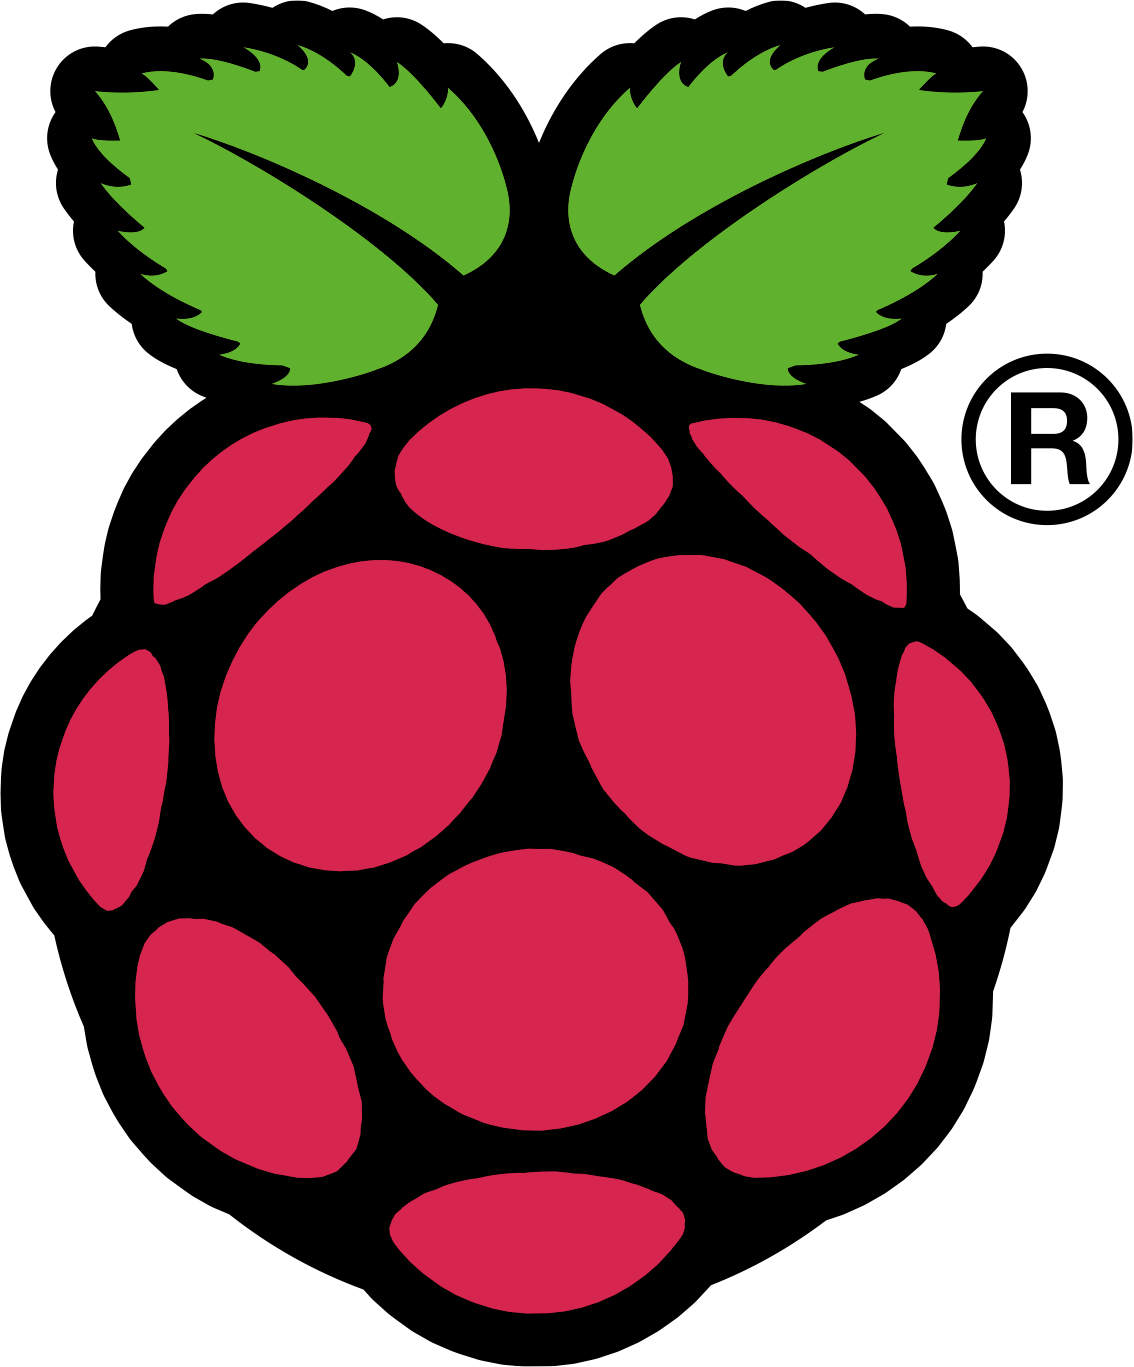 Raspberry Pi Logo Wallpaper